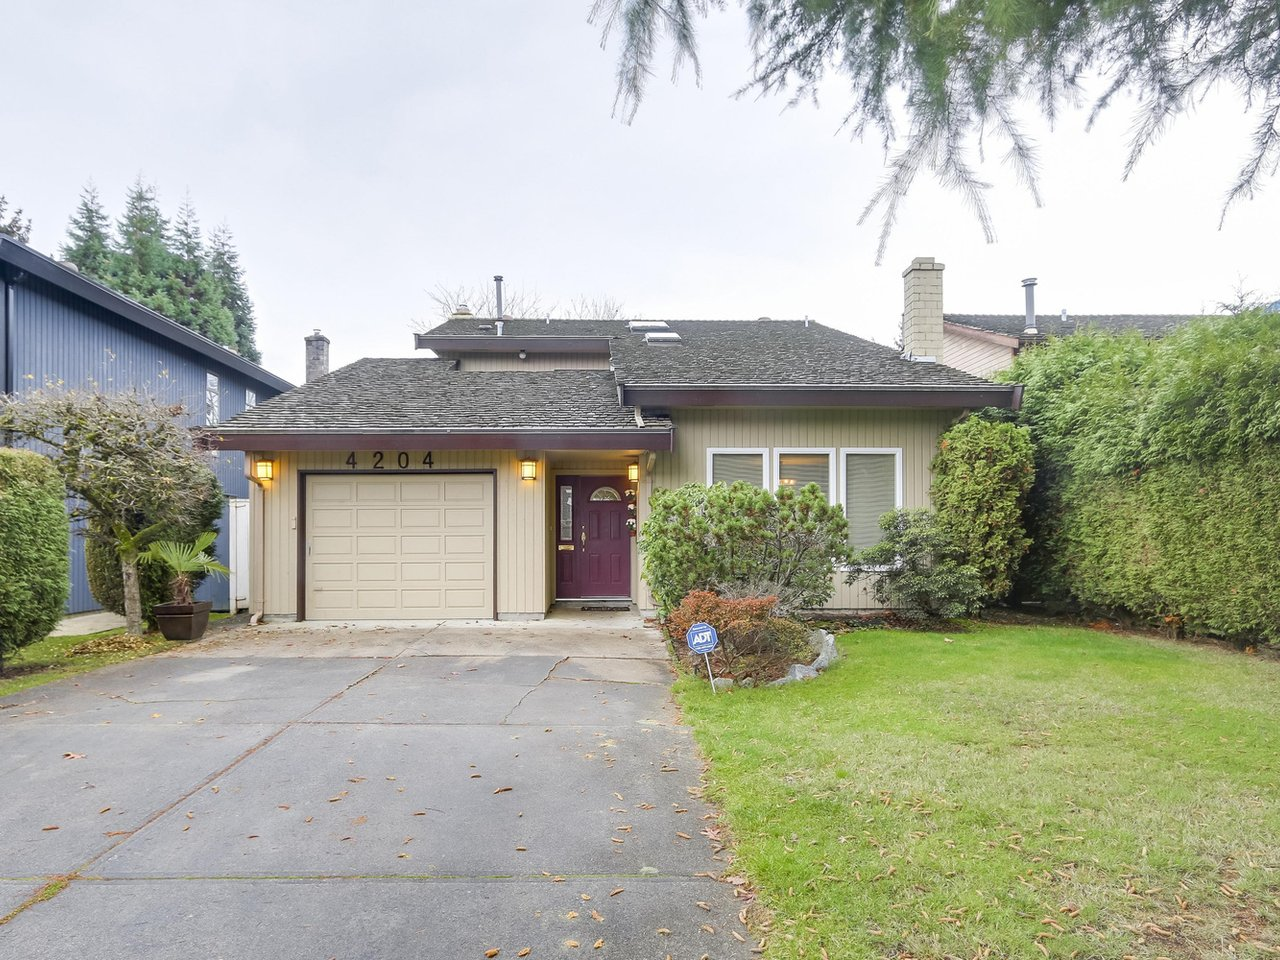 Main Photo: 4204 CRAIGFLOWER Drive in Richmond: Boyd Park House for sale : MLS® # R2224042